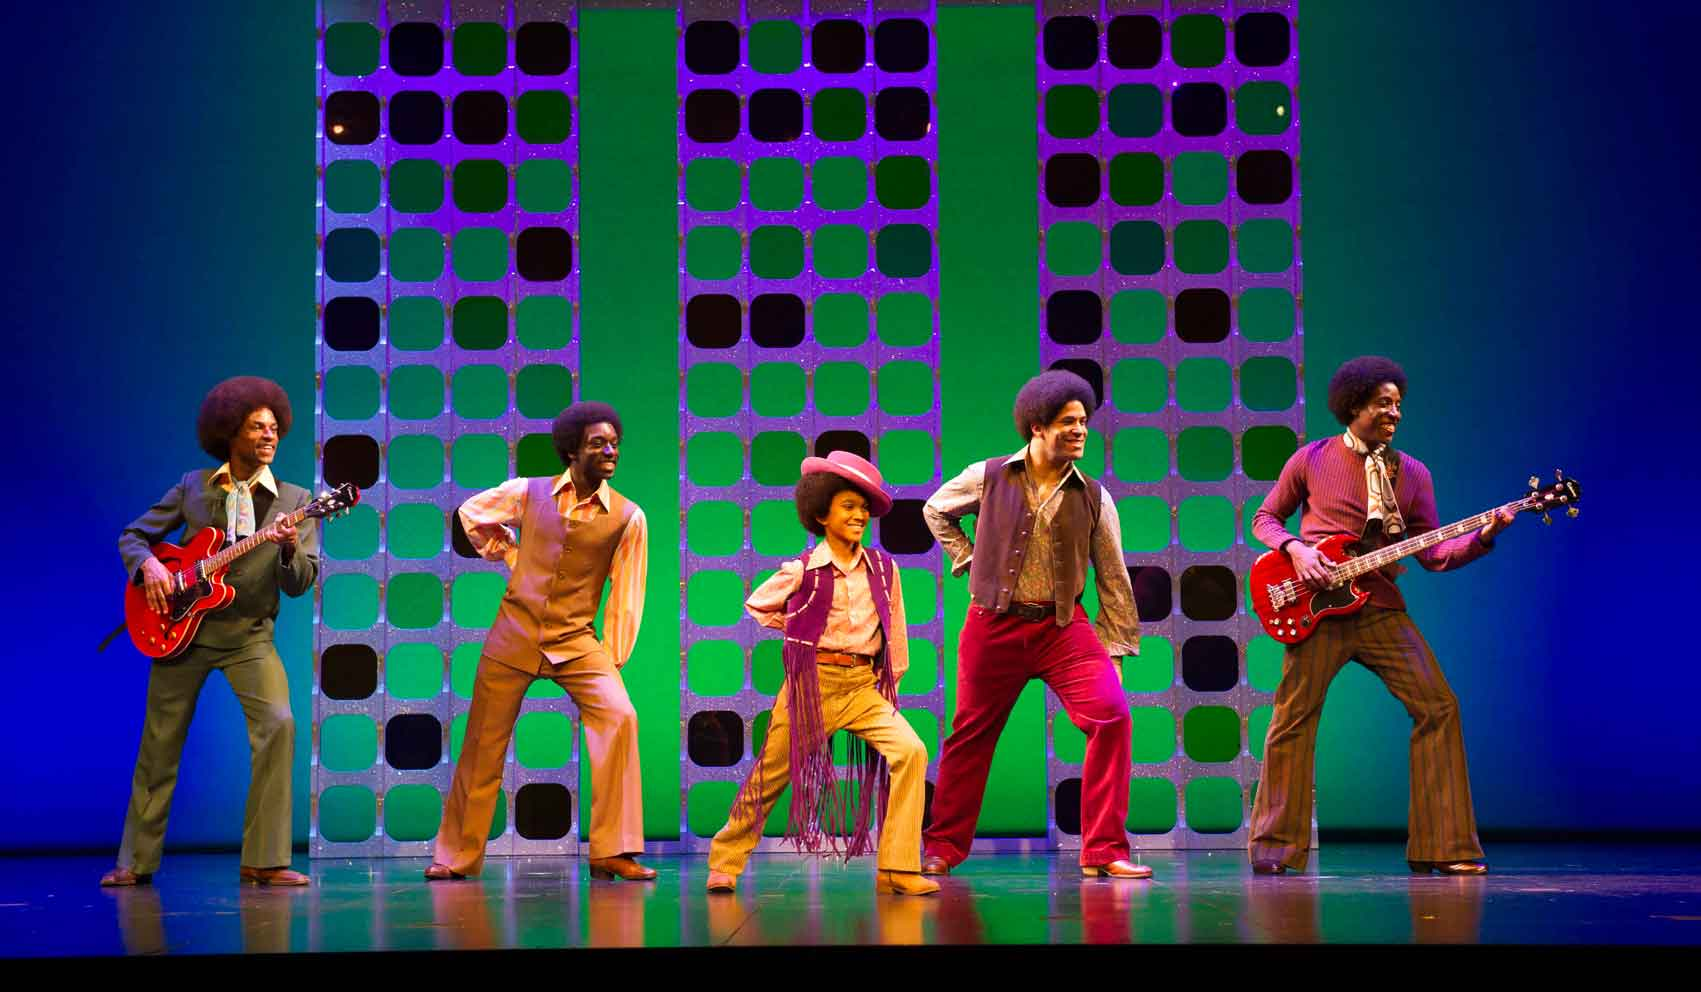 l-r Brandon Lee Sears, Samuel Edwards, Eshan Gopal, Simon Ray Harvey, Simeon Montague as The Jackson 5 in Motown the Musical.  Photo : Alastair Muir | First Look: Motown the Musical